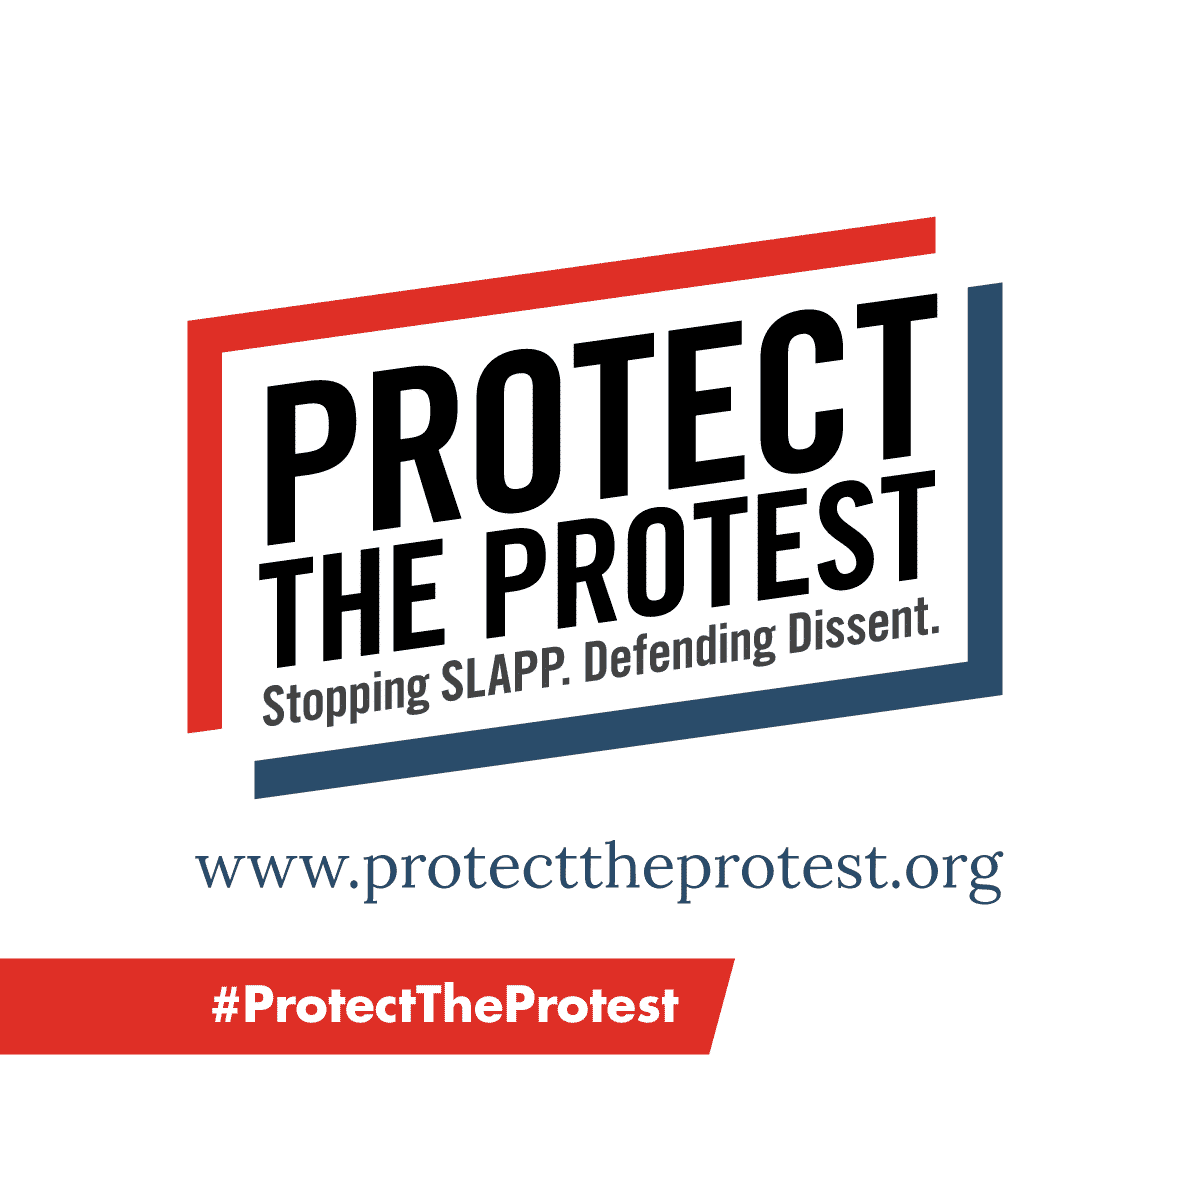 Join me & allies at 3pmPT to learn how the oil company that ADMITTED to polluting the Amazon- @Chevron suppresses free speech & abuses the US legal system to punish @SDonziger & others who fight for justice. Panel on SLAPP Suits for Enviro Lawyers. RSVP: buff.ly/2R2CkMO